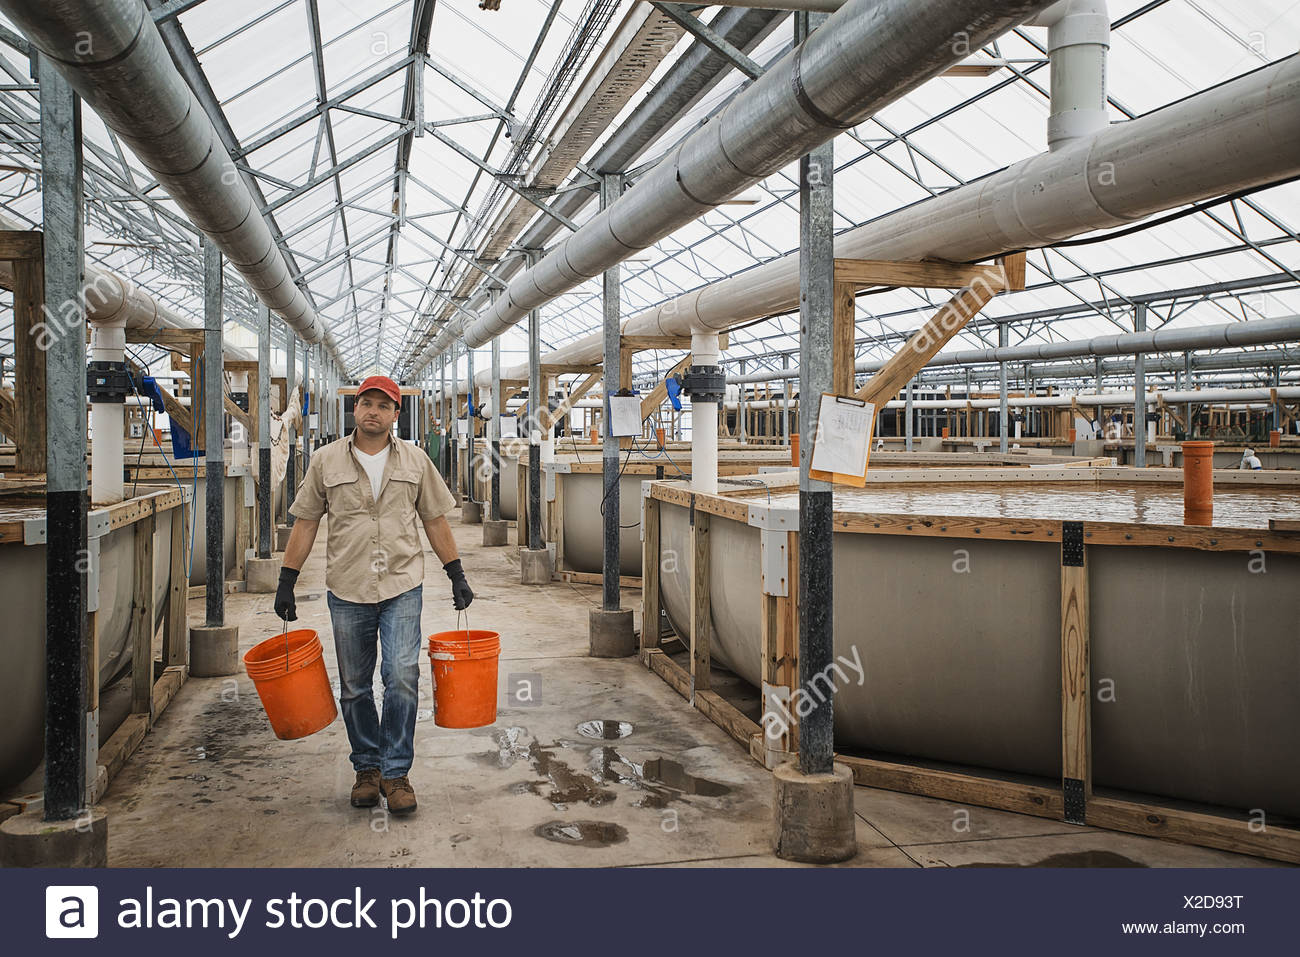 New York state USA large fish farm with raised water breeding tanks - Stock Image